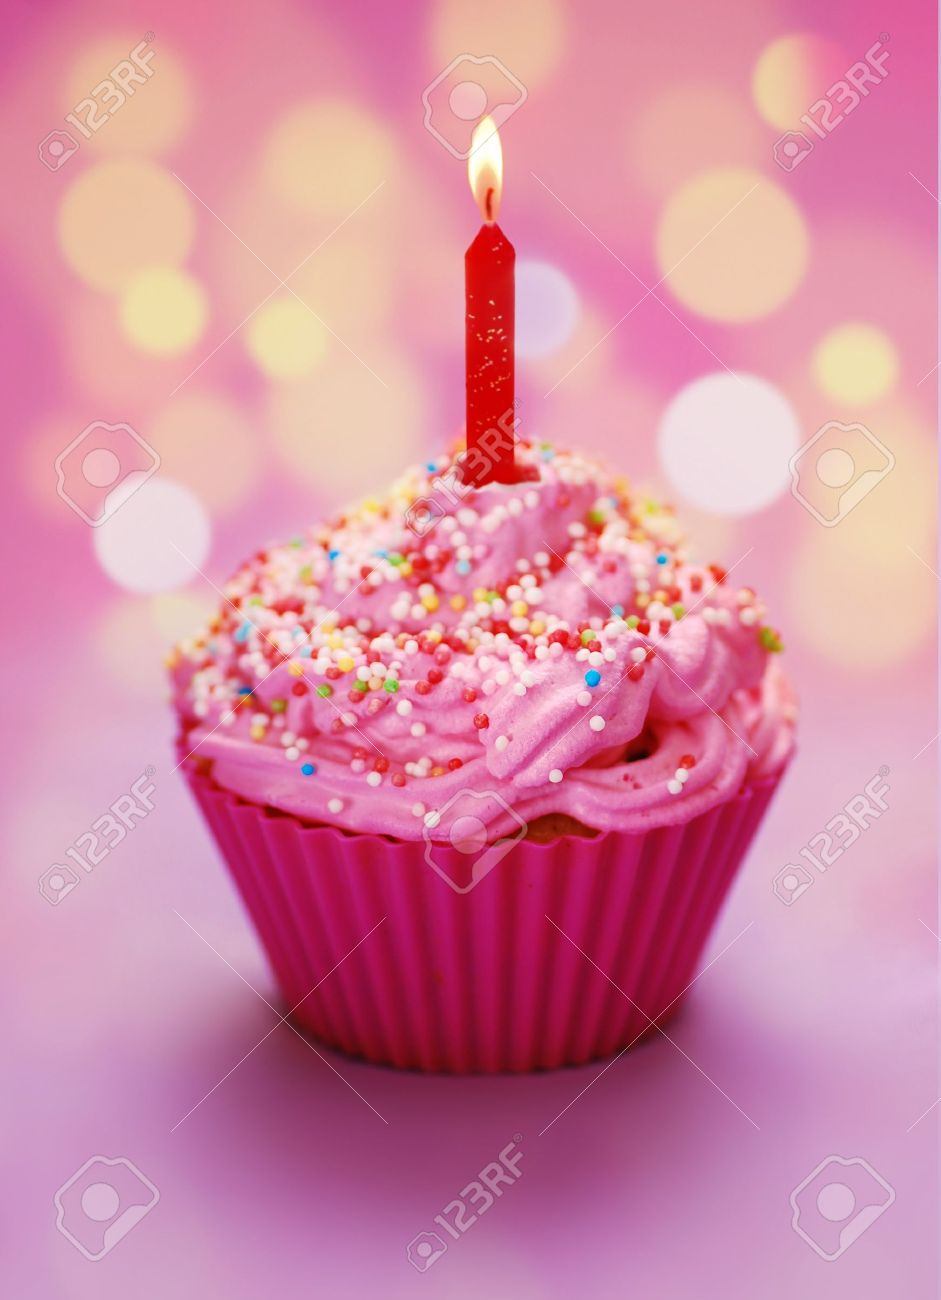 Pink birthday cupcake with a candle Stock Photo - 7977550